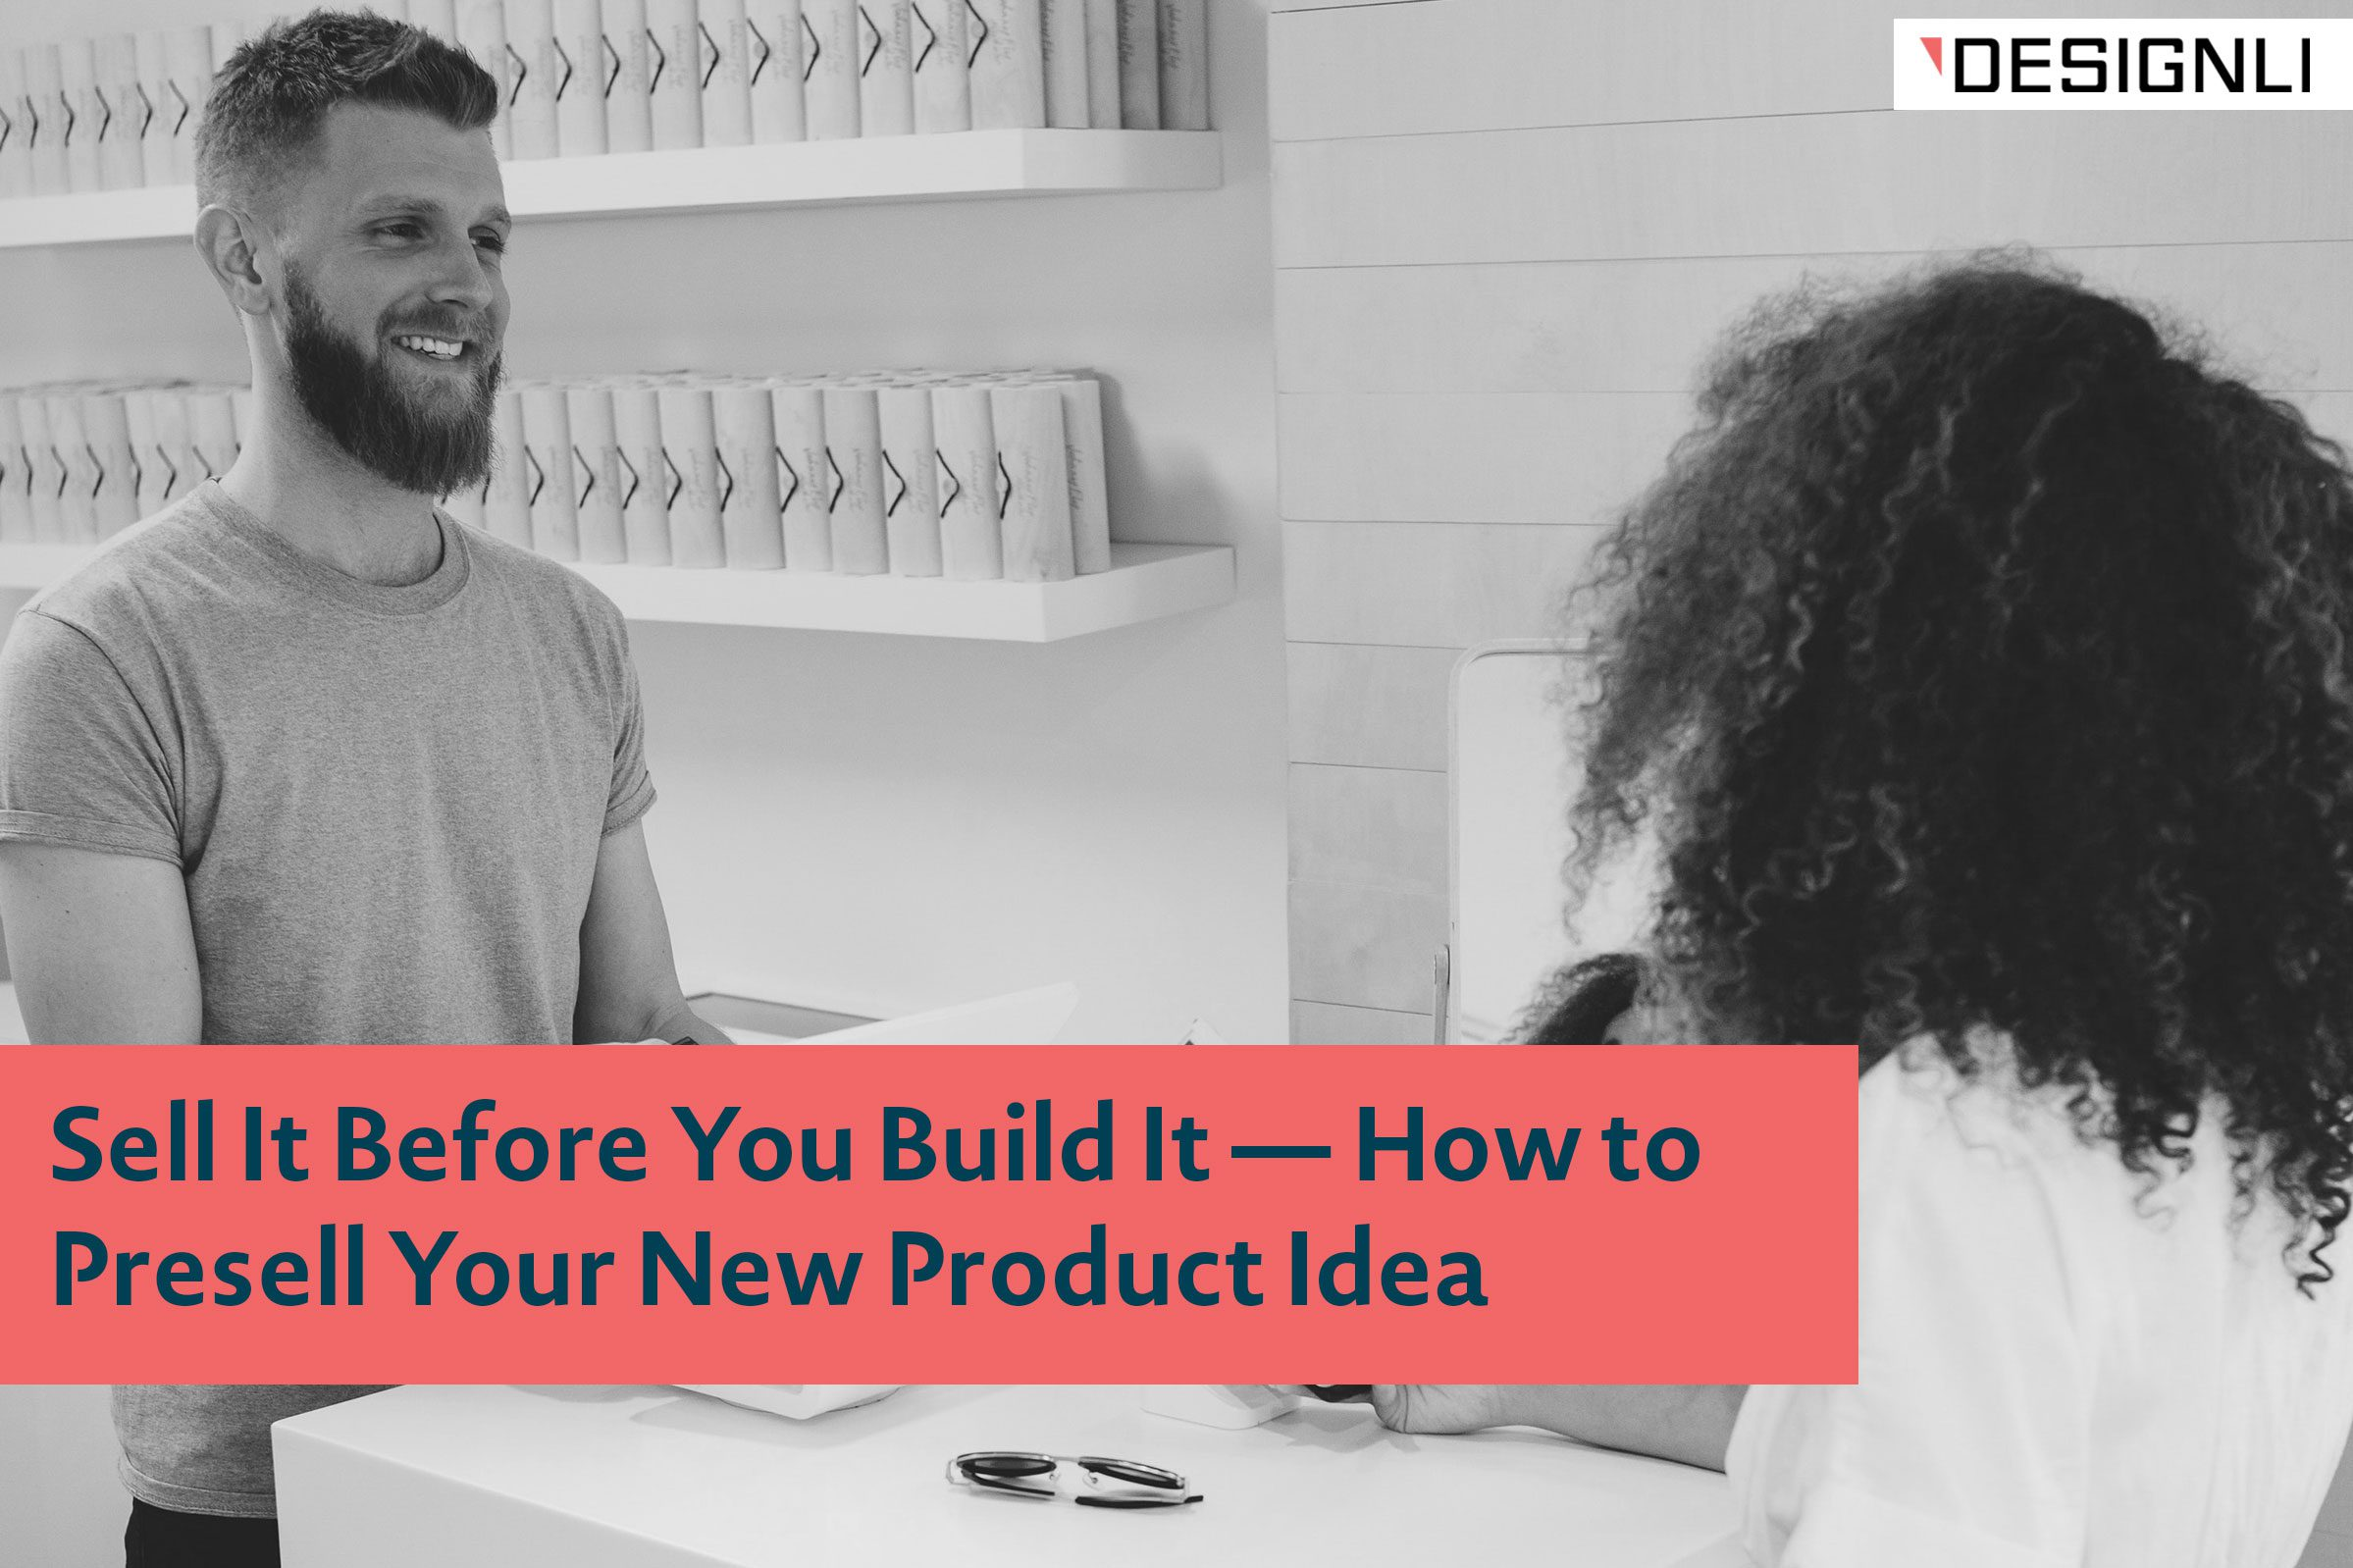 how to presell your new product idea